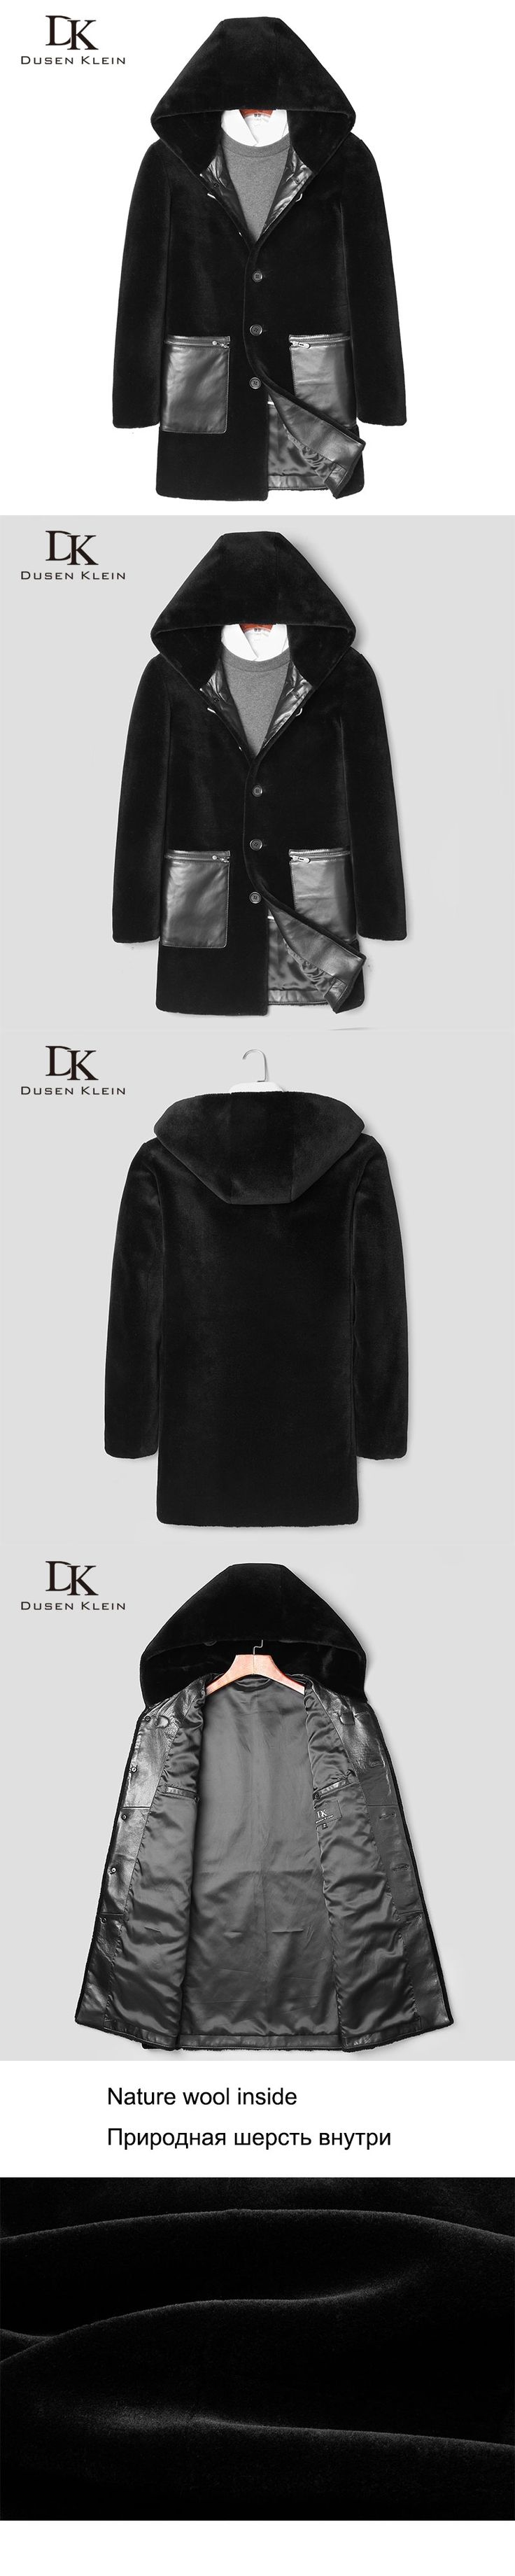 2017 Fashion Wool Coat with hooded Dusen Klein Brand Pocket design men's wool jacket winter coat thick outer coats 71J7861